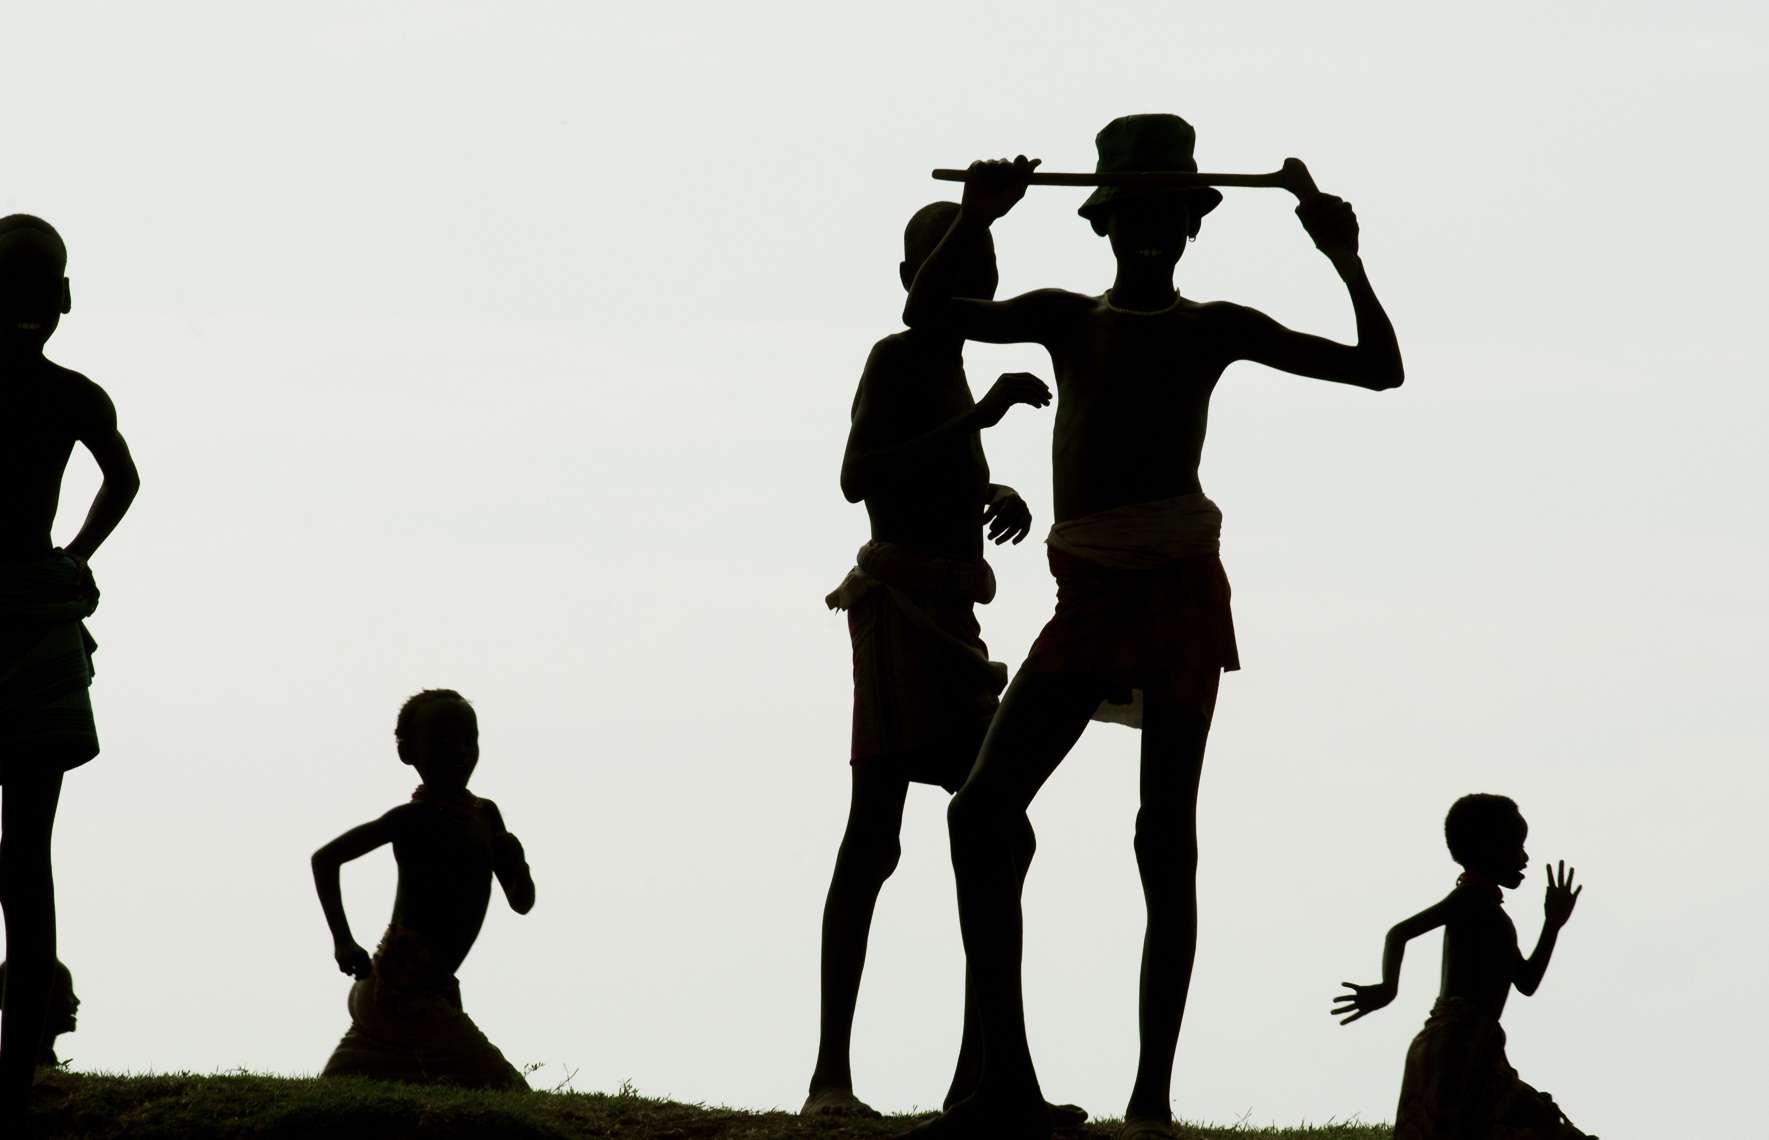 Silhouettes of Dassenech Children, Omo River, Ethiopia